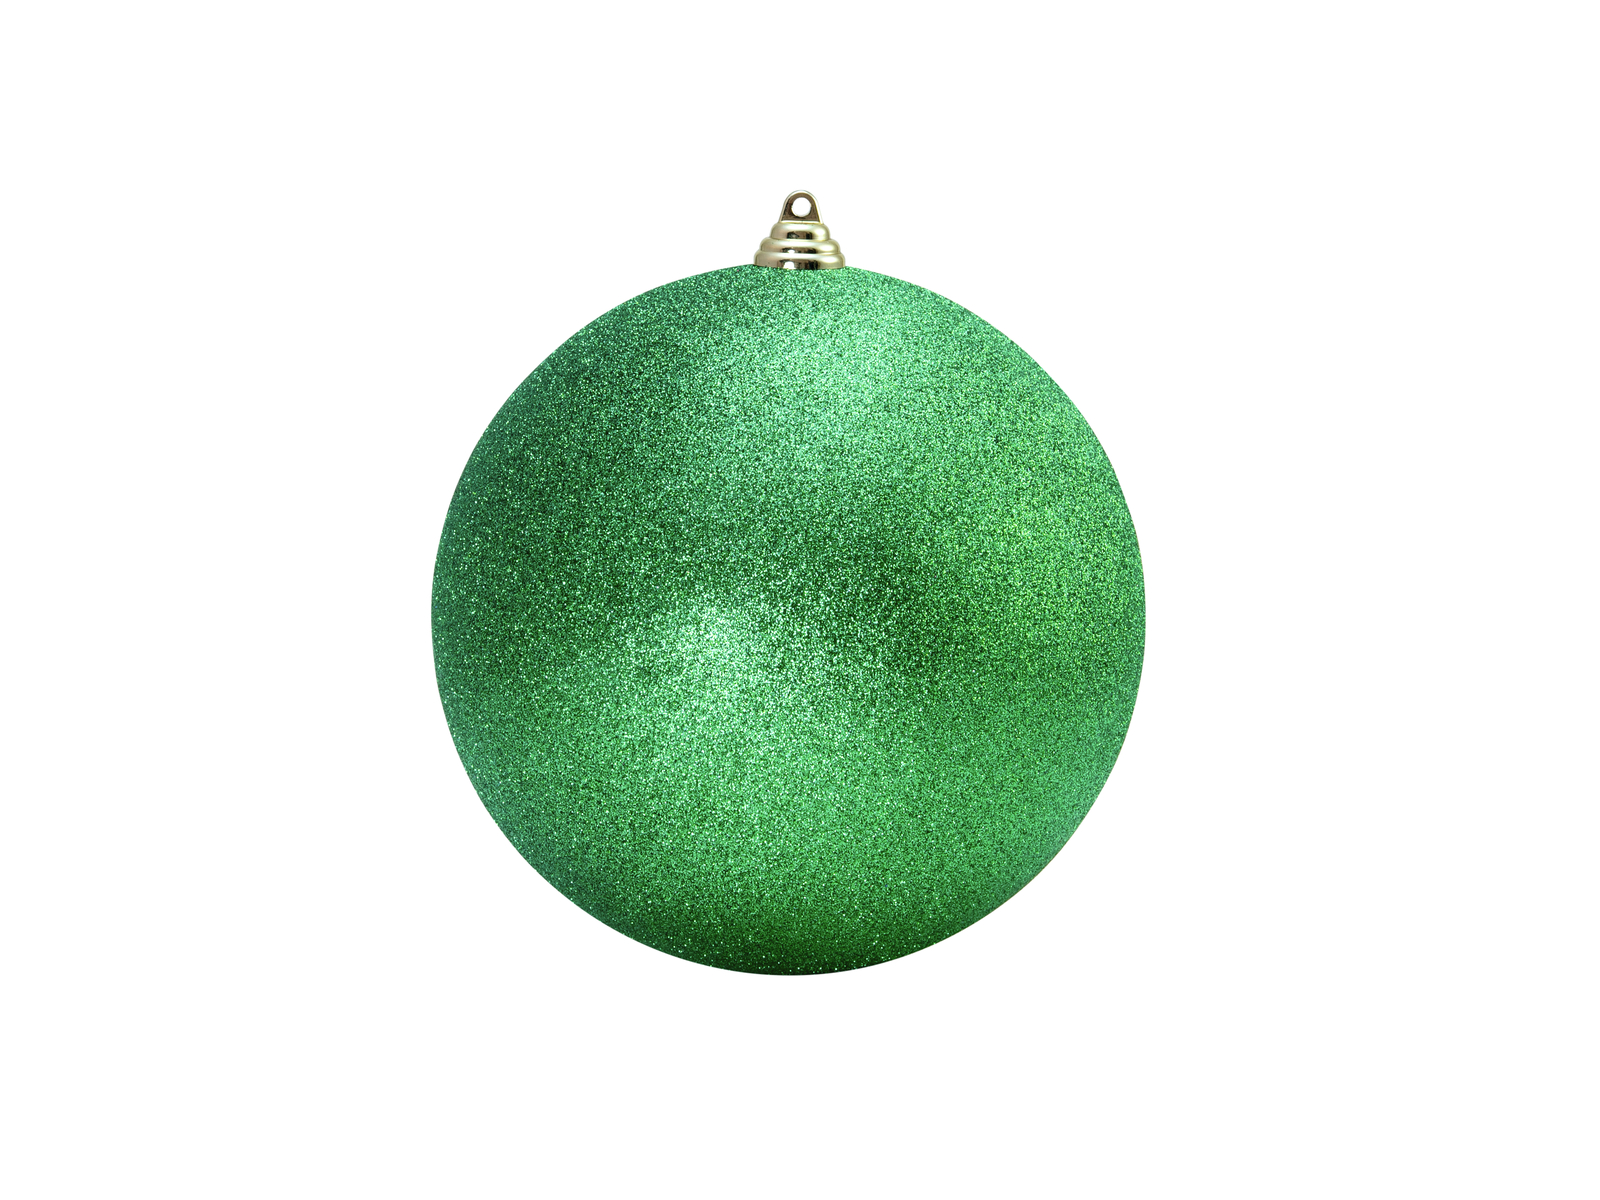 EUROPALMS Decoball 10cm, applegreen, glitter 4x